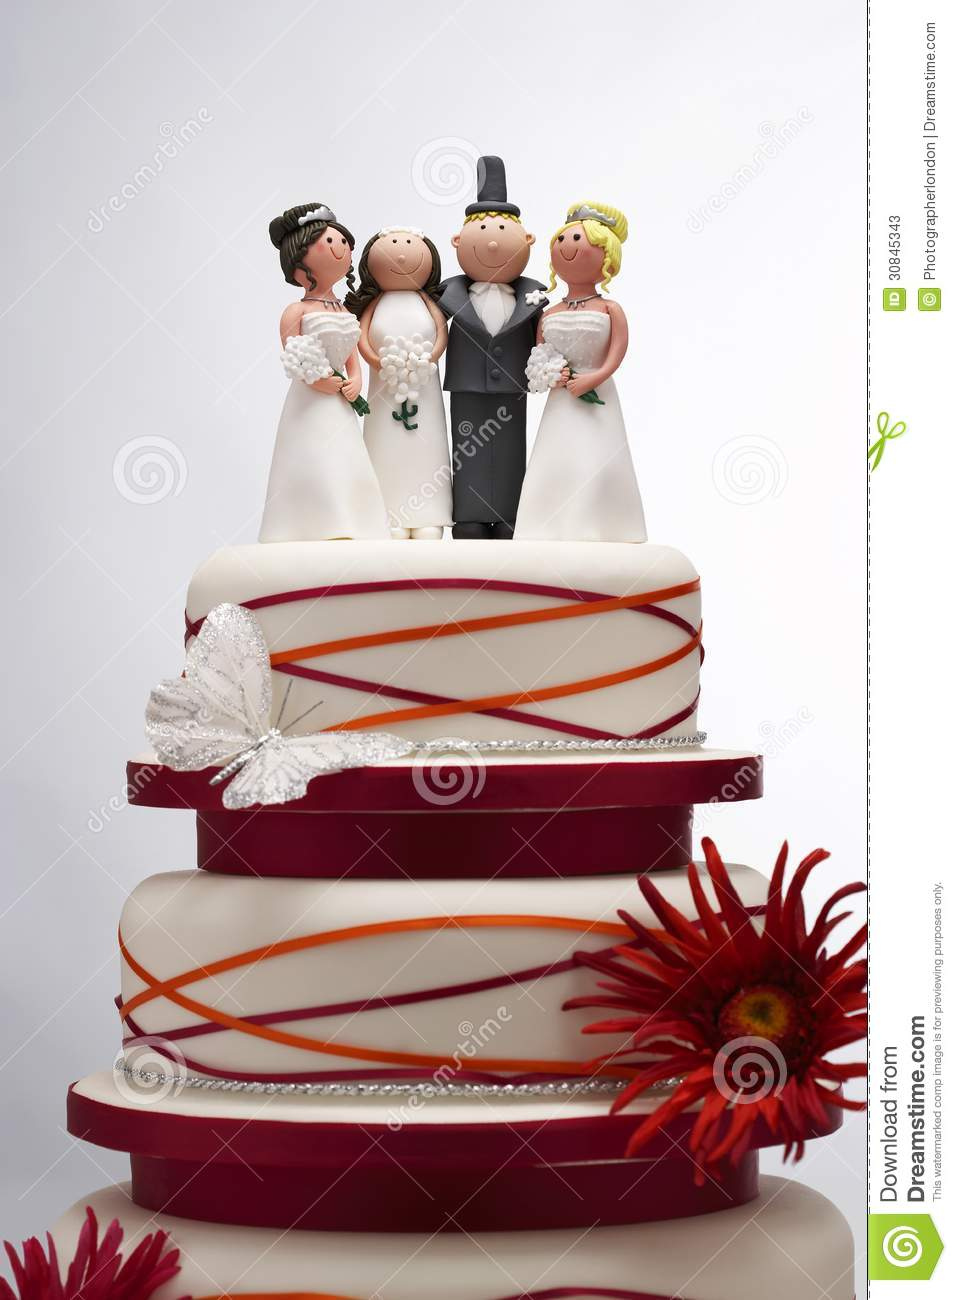 Cultural Wedding Cakes